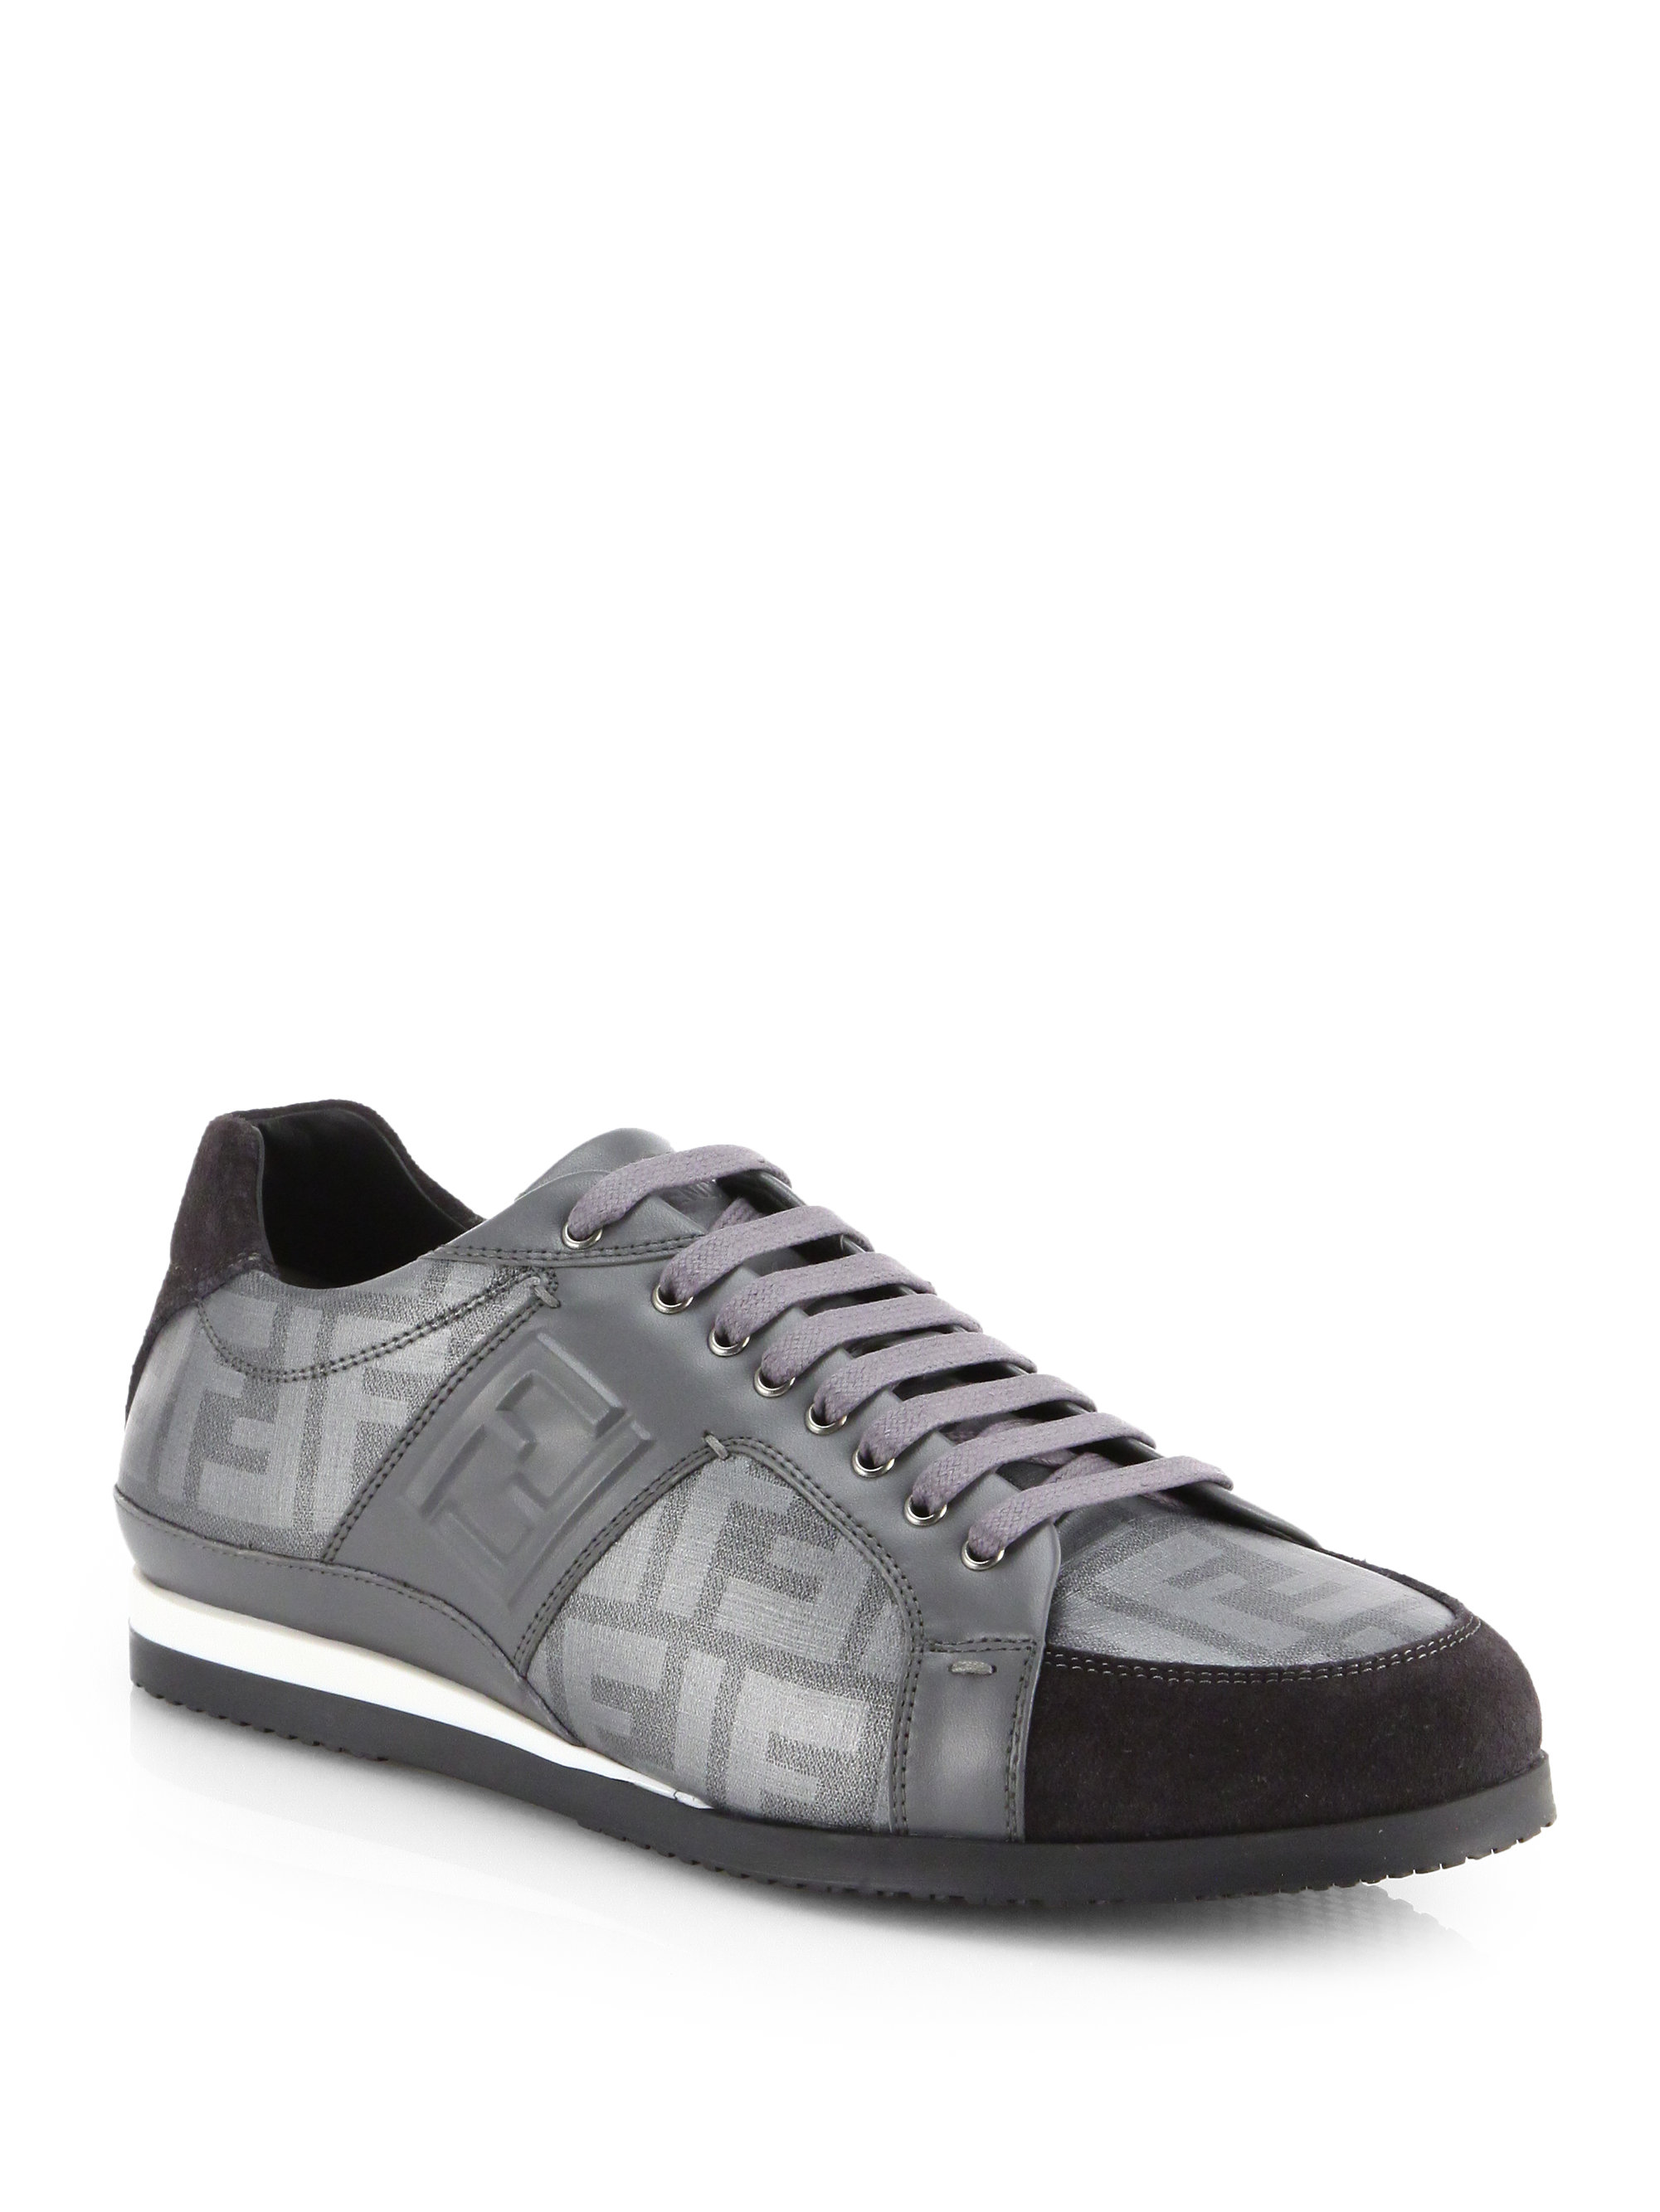 Lyst - Fendi Zucca Laceup Sneakers in Gray for Men 383409f2f05d9